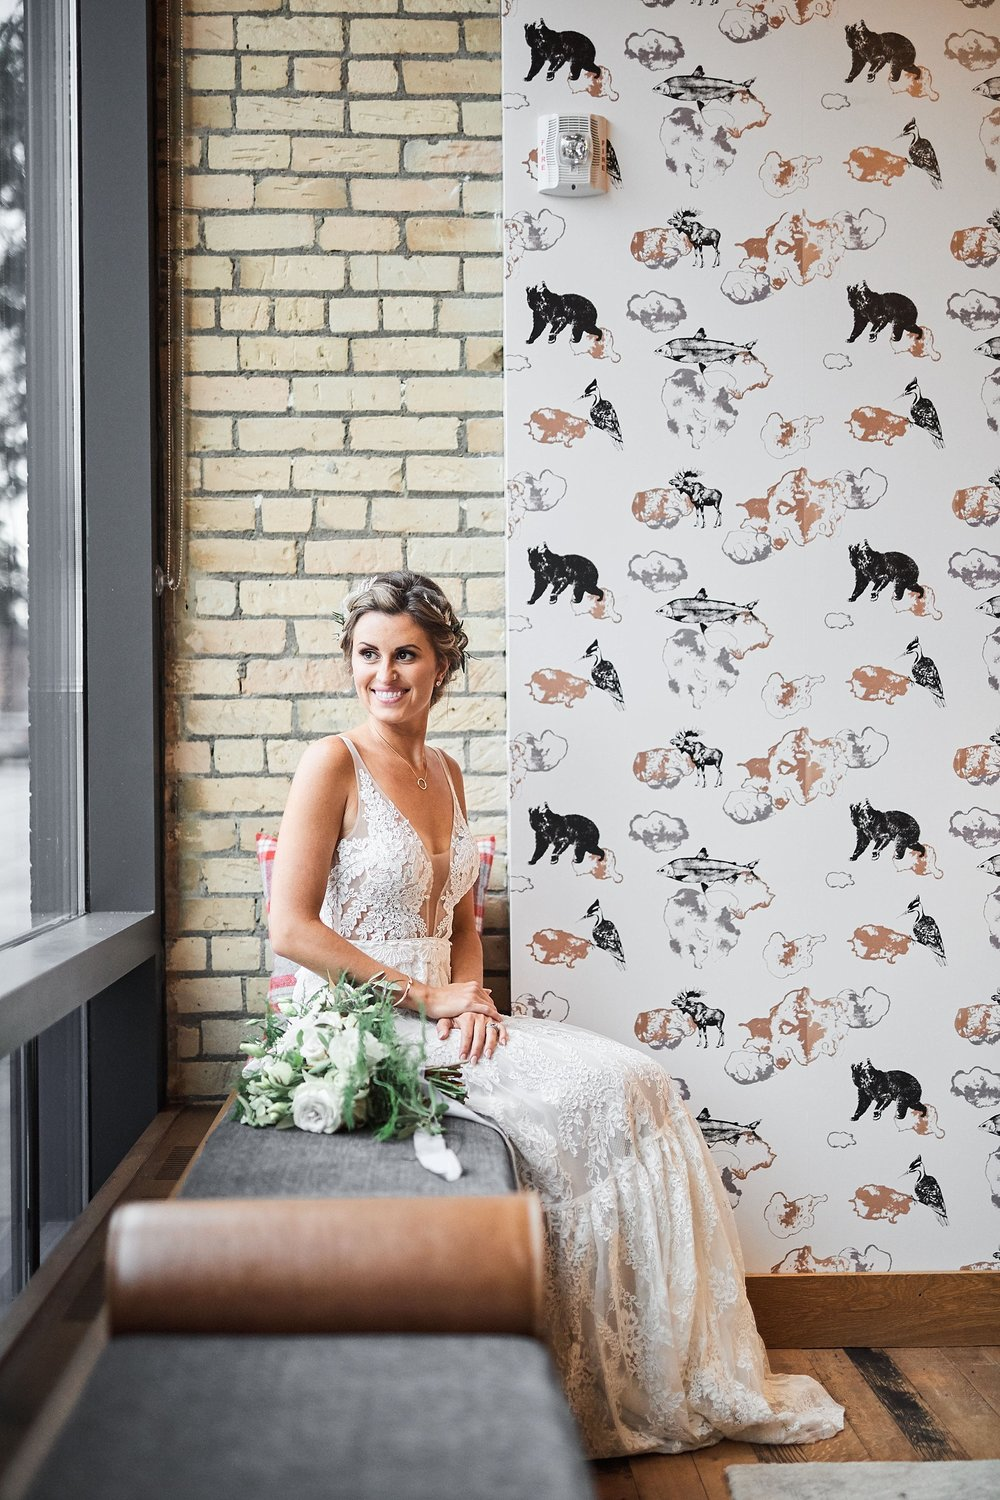 Hewing-Hotel-Minneapolis-Minnesota-Wedding-Rooftop-Bride-Engaged_1188.jpg